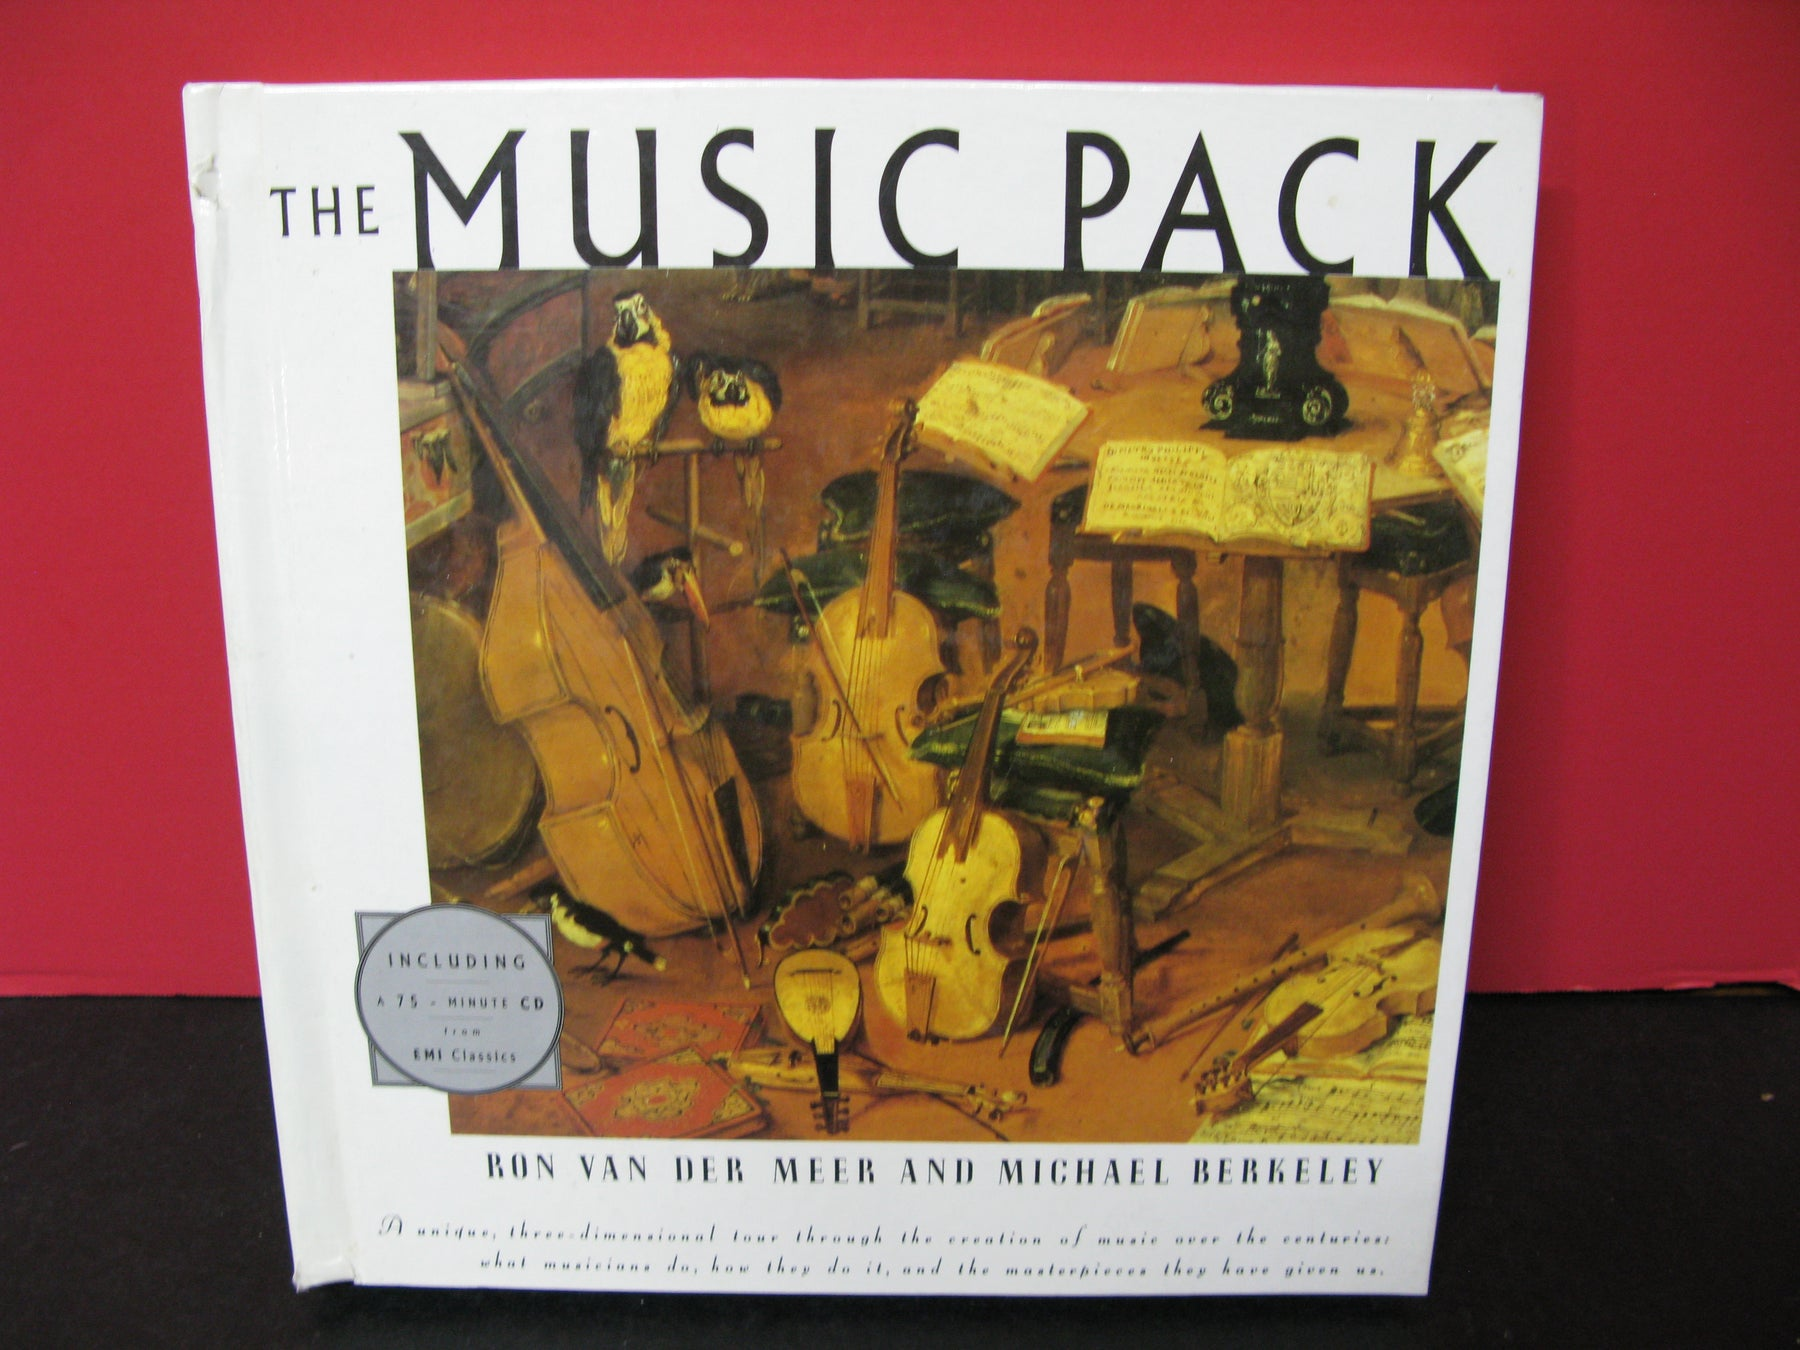 The Music Pack-Ron Van Der Meer and Michael Berkeley